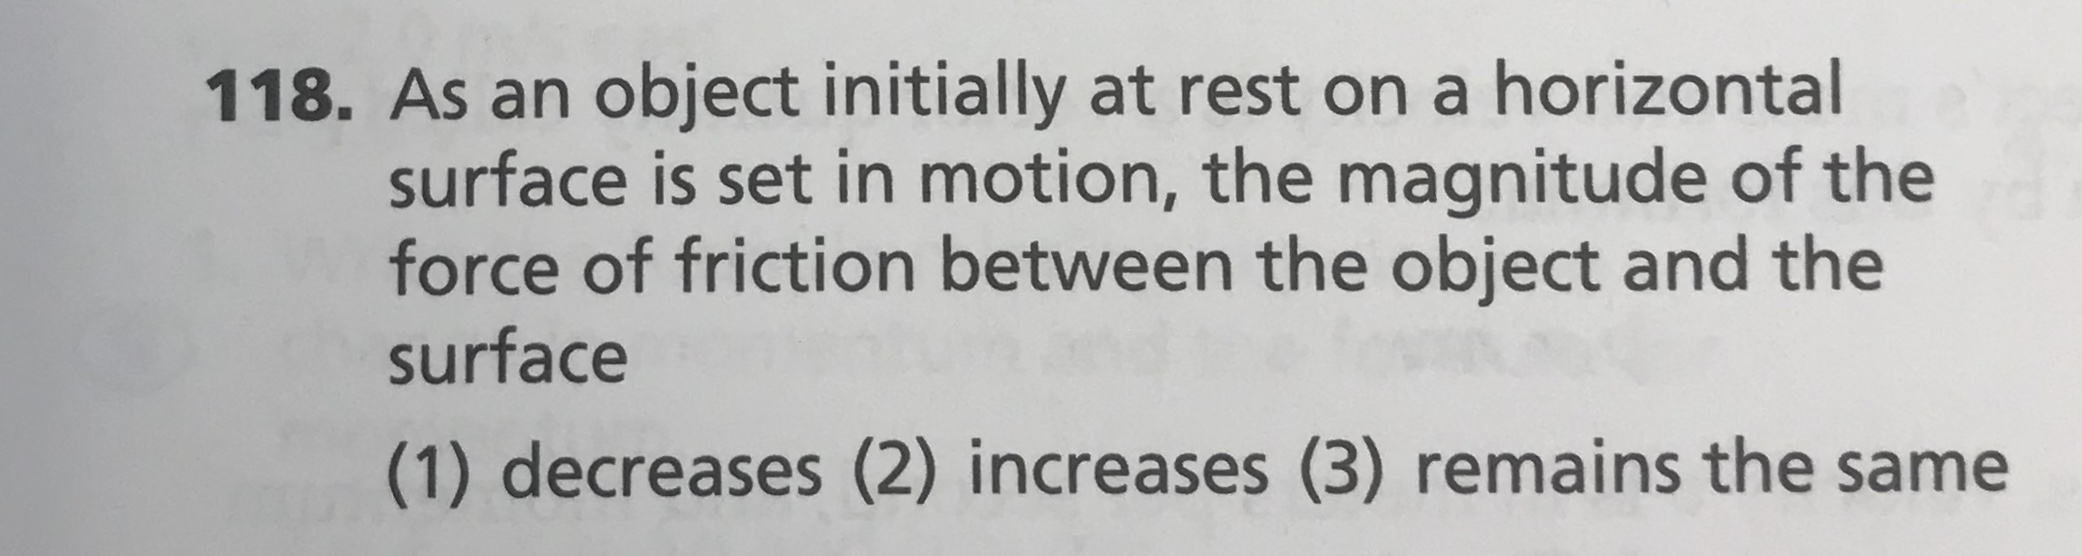 118. As an object initially at rest on a horizontal surface is set in motion, the magnitude of the force of friction between the object and the surface (1) decreases (2) increases (3) remains the same